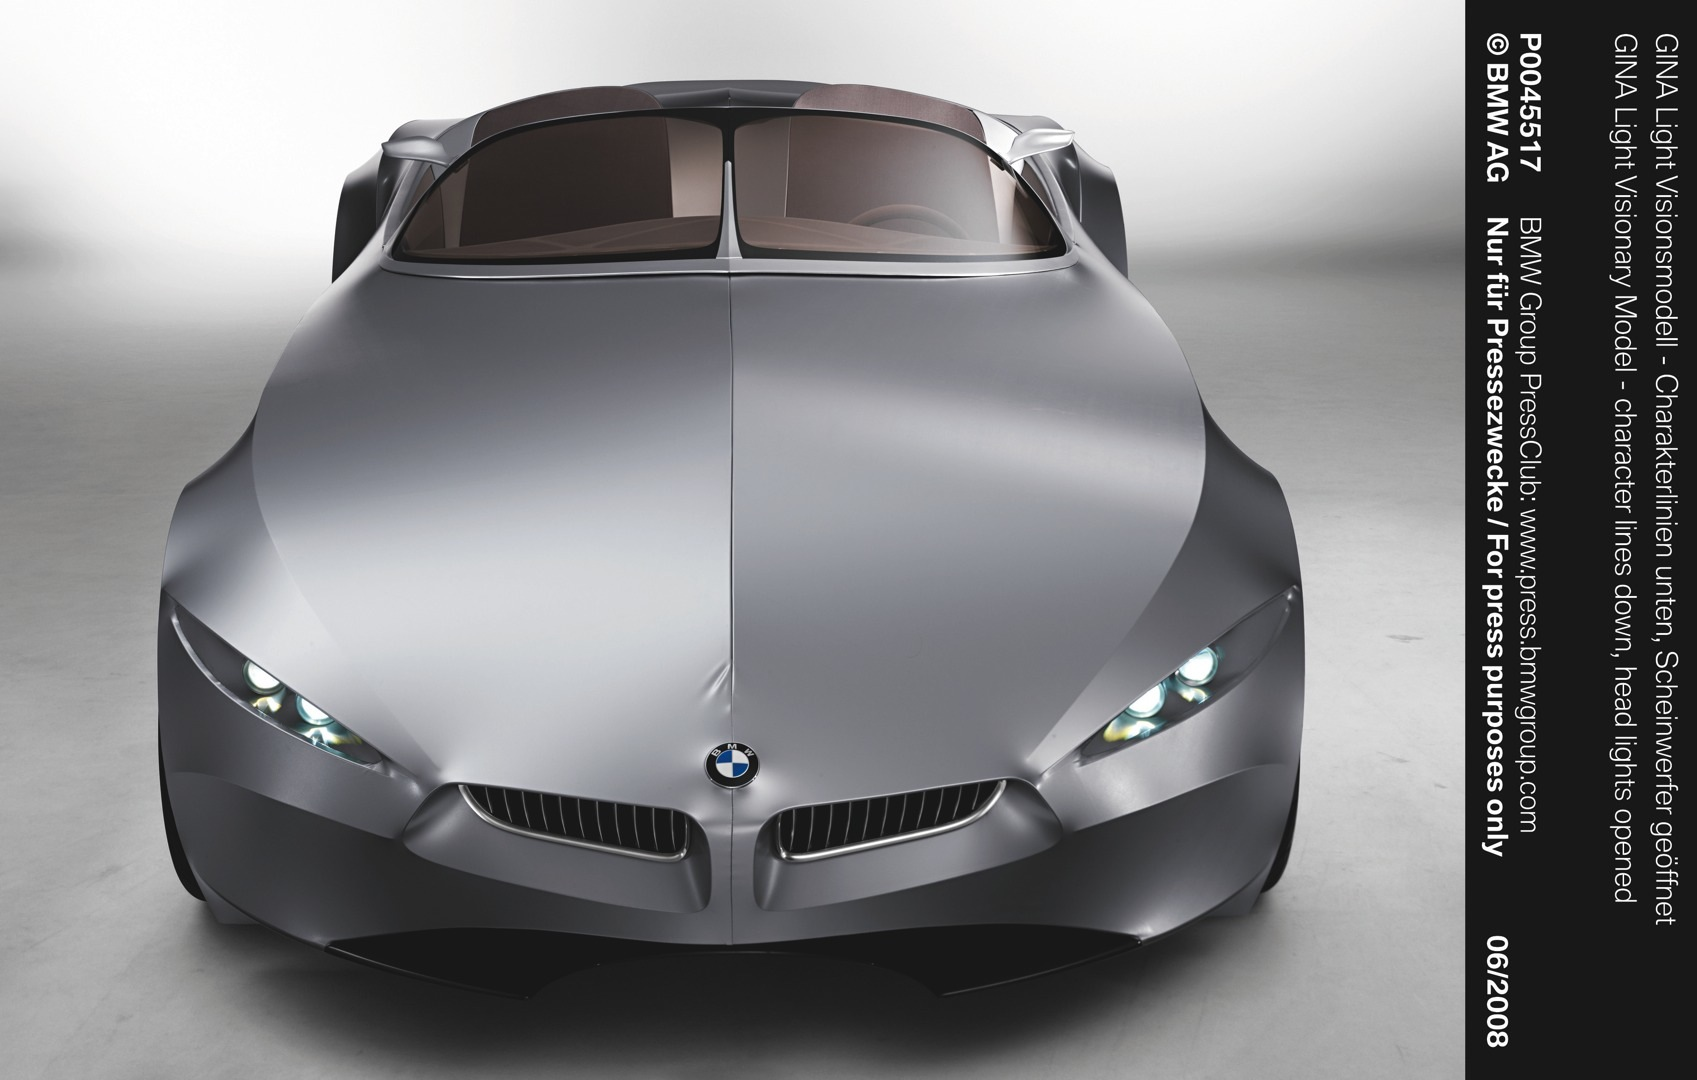 Bmw Gina Concept To Be Showcased At Dream Cars Exhibition Photo Gallery